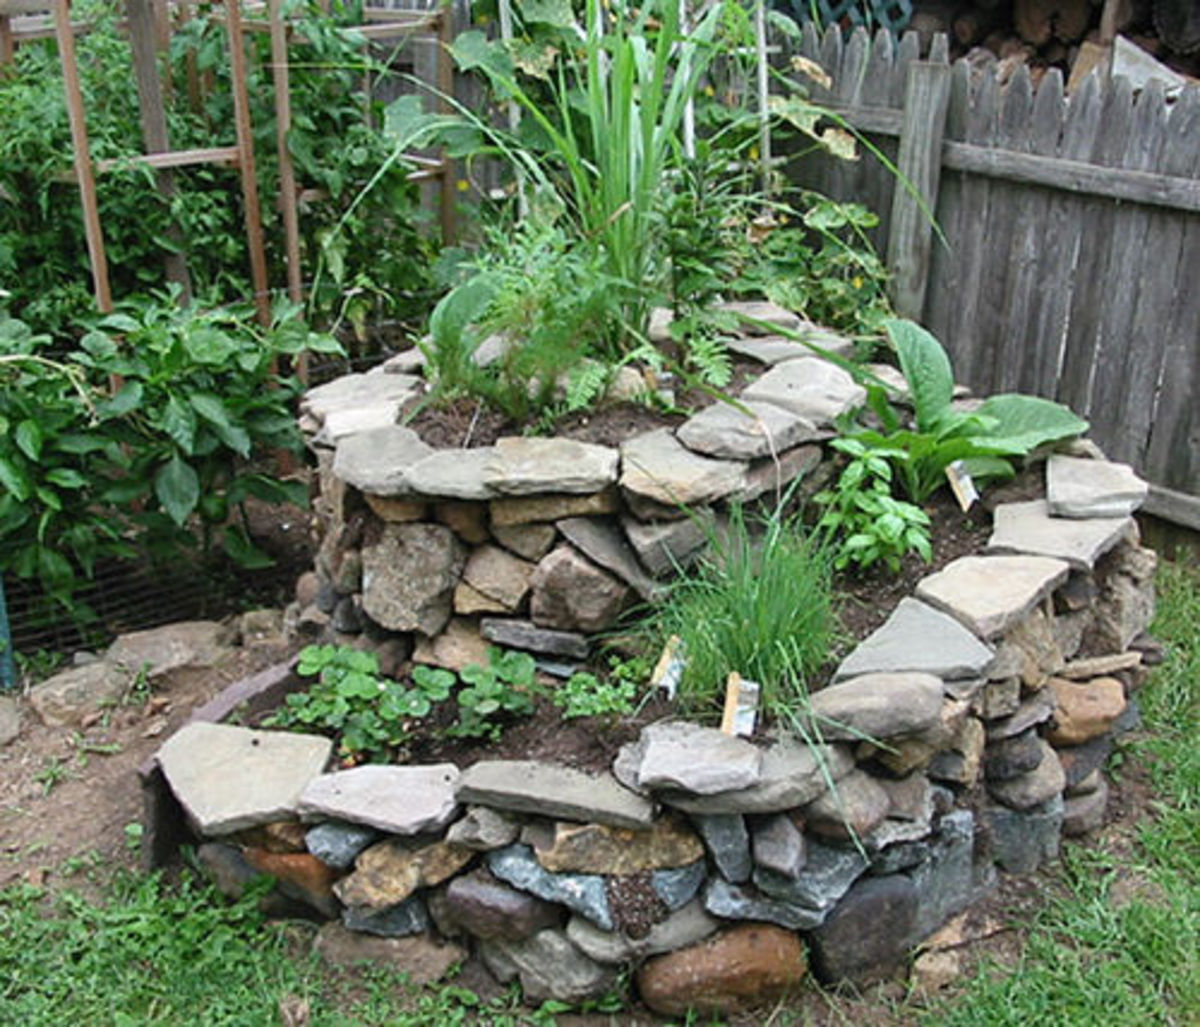 What a beautiful spiral garden made of stone!